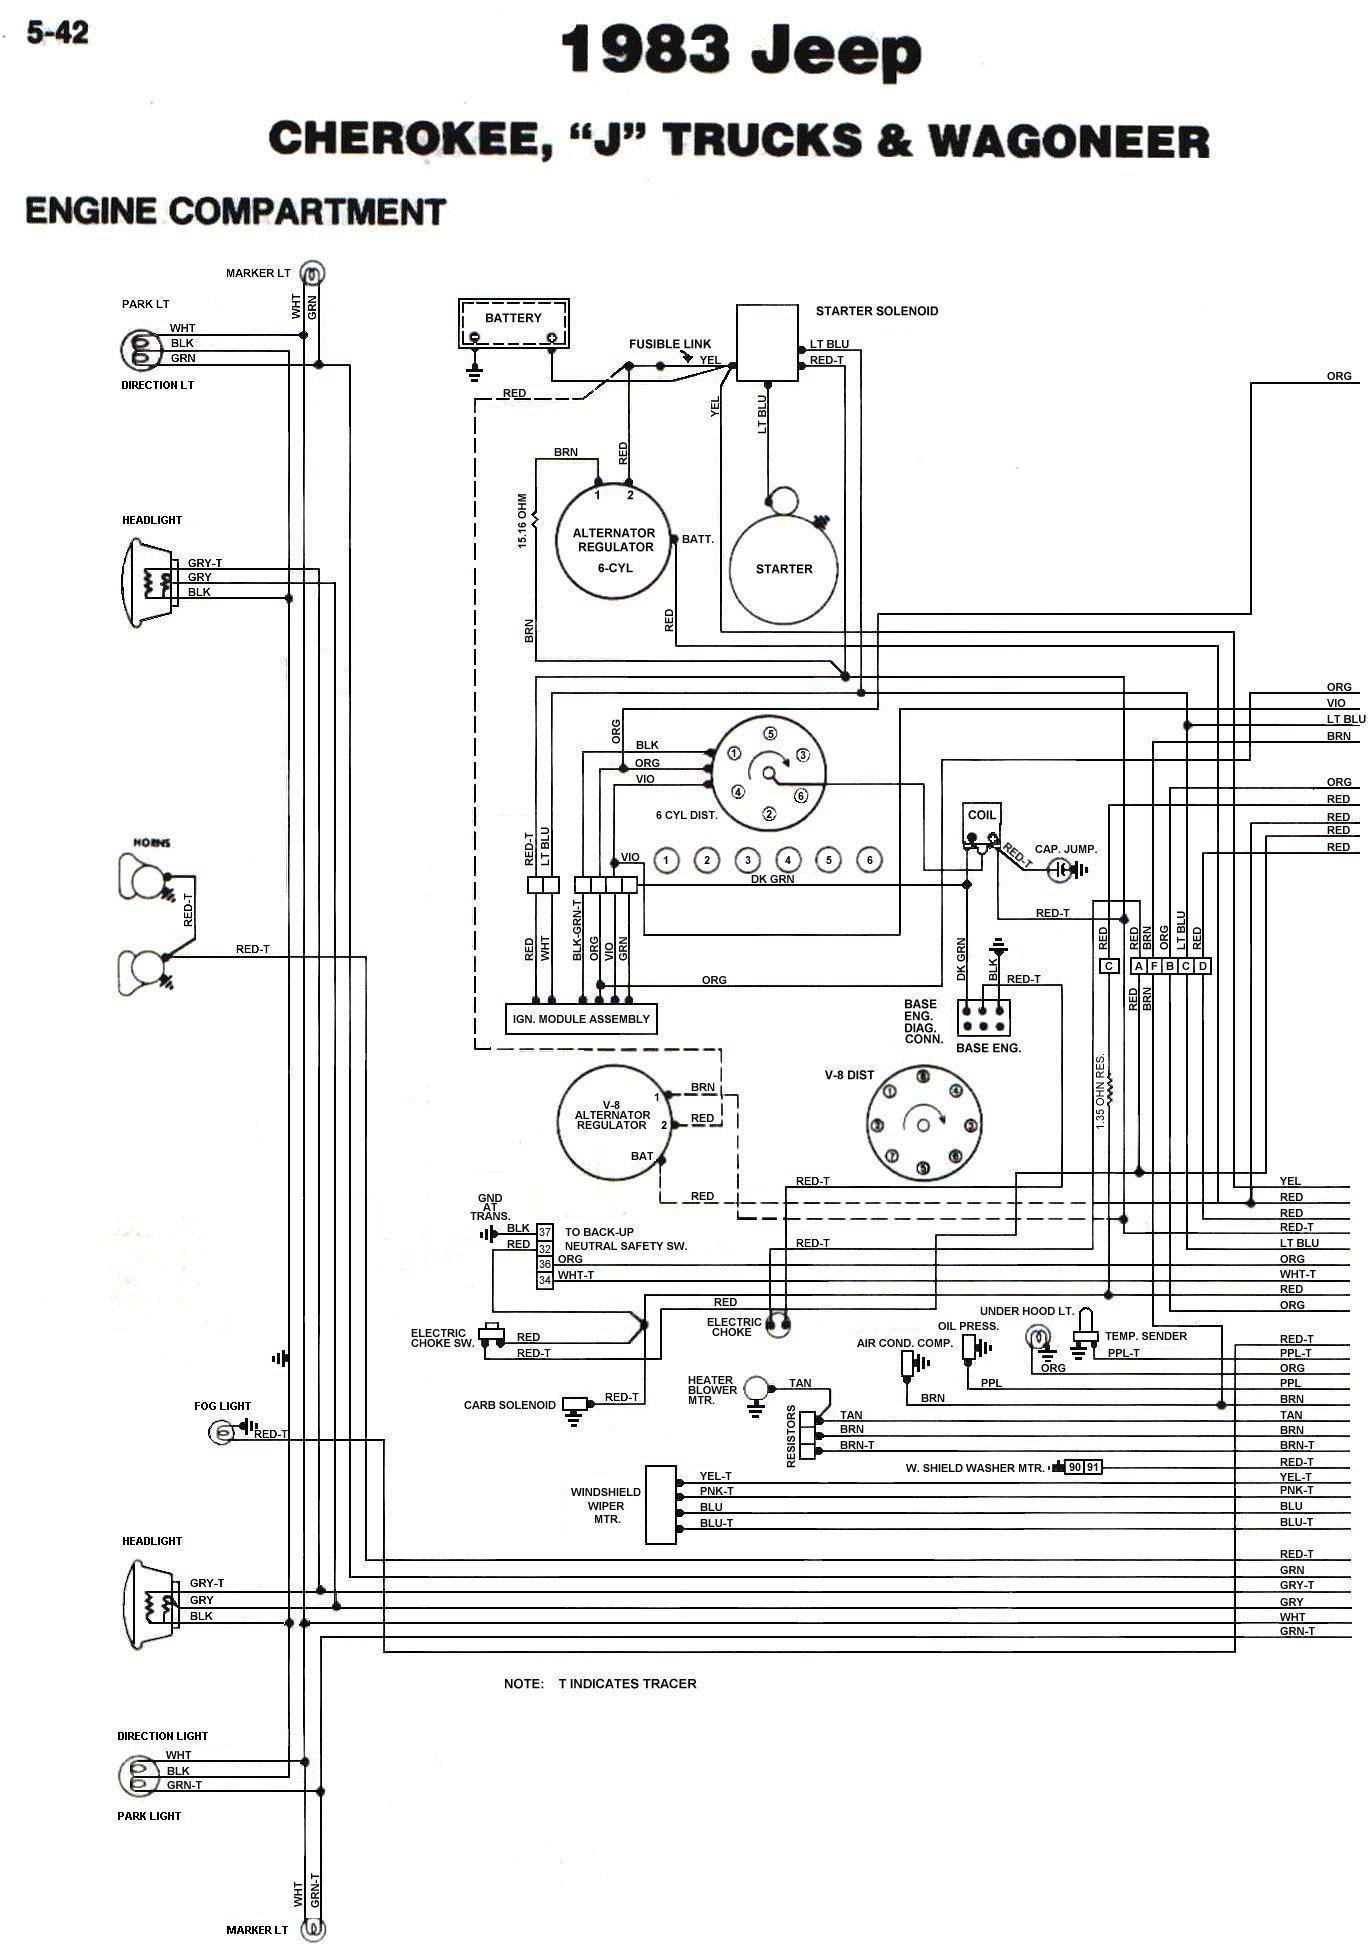 83 fsj wiringdiagram engine compartment jpg